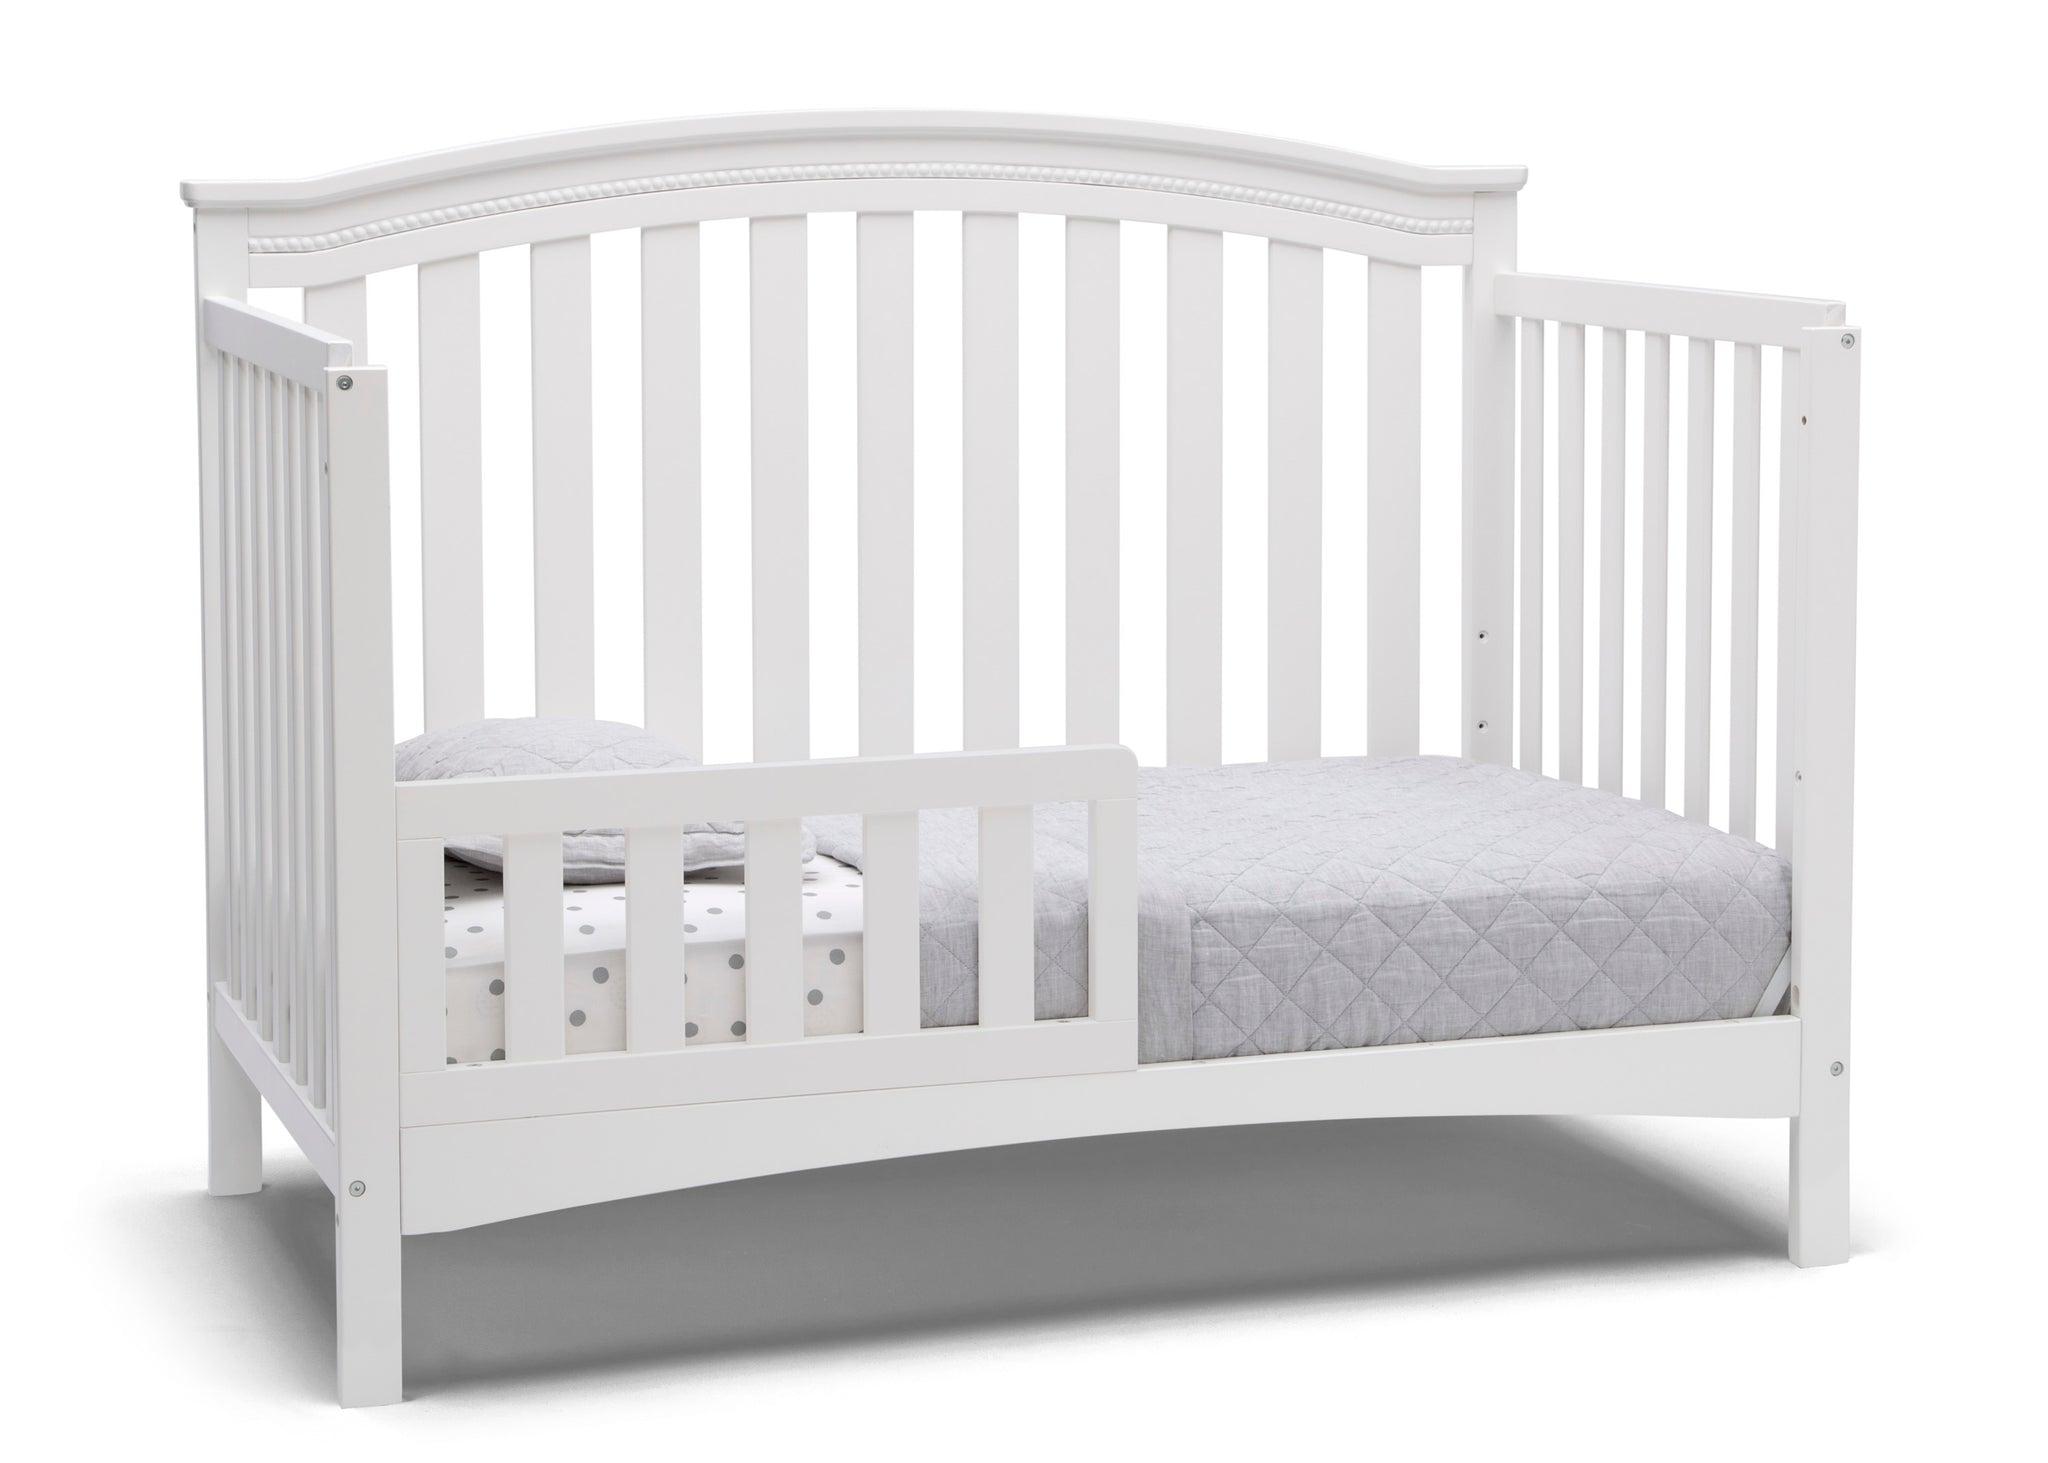 Delta Children Bianca White (130) Waverly 6-in-1 Convertible Crib, Right Toddler Bed Silo View